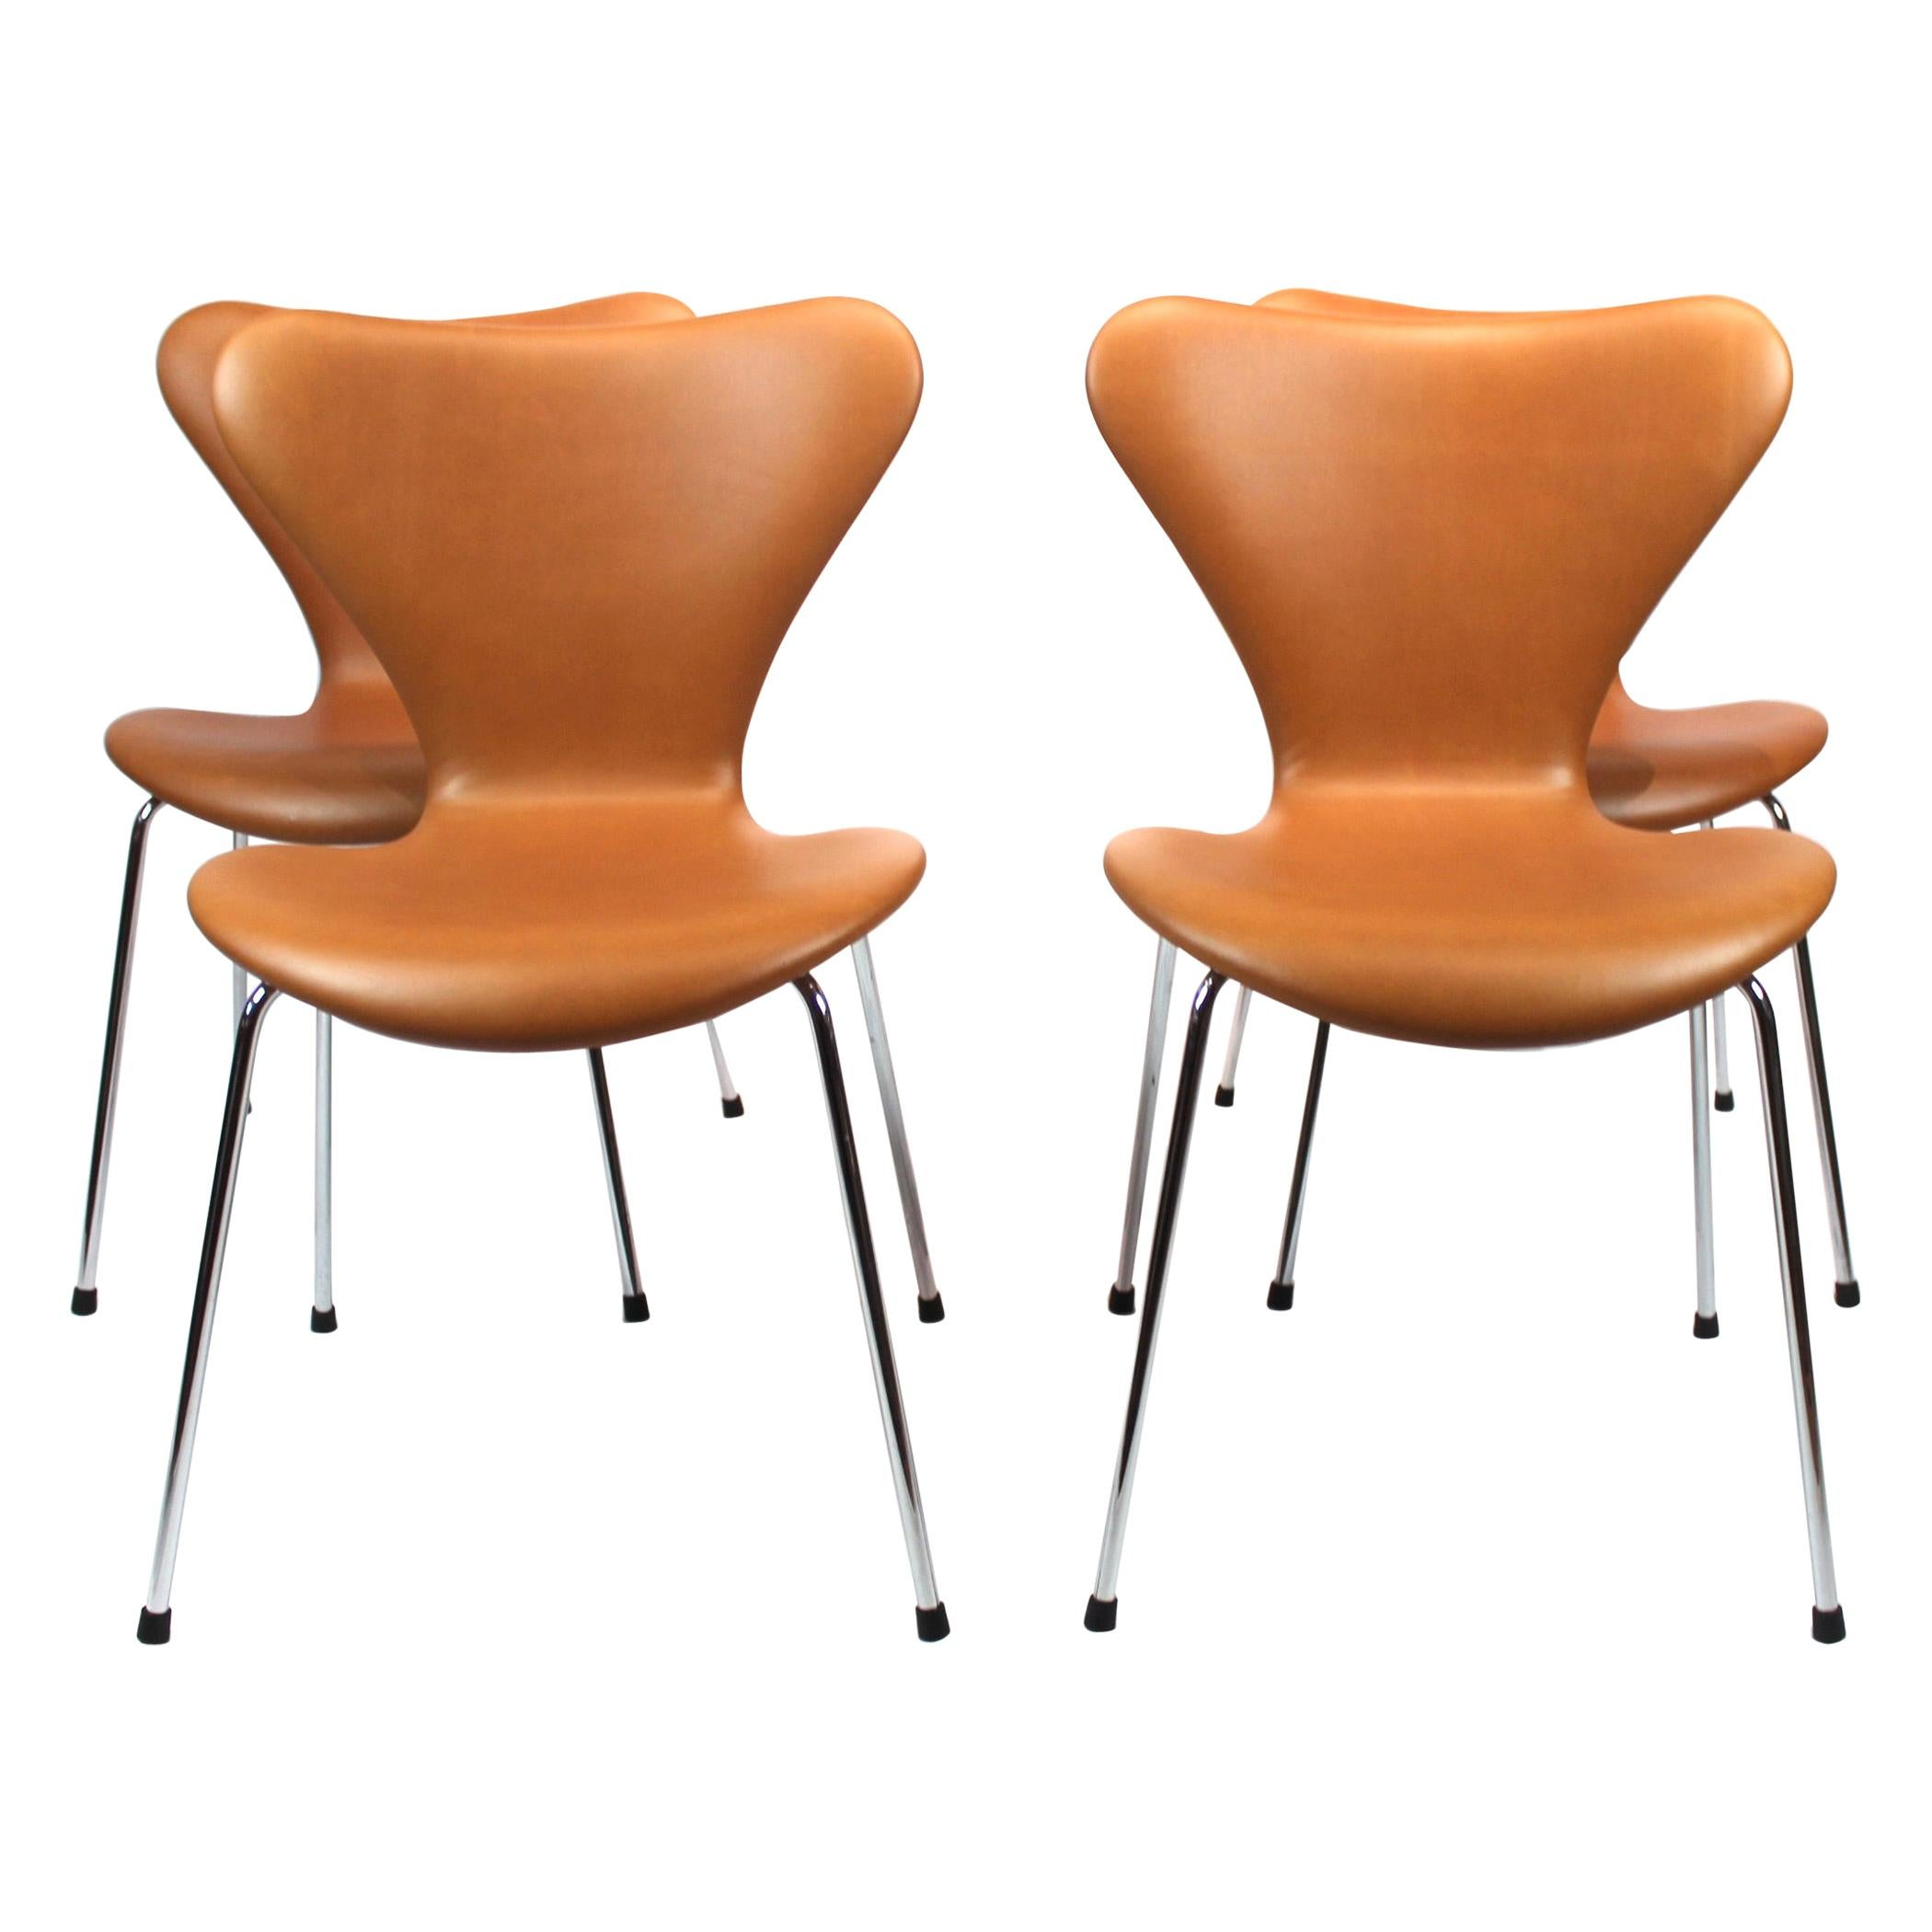 Set of 4 Seven Chairs, Model 3107, by Arne Jacobsen and Fritz Hansen